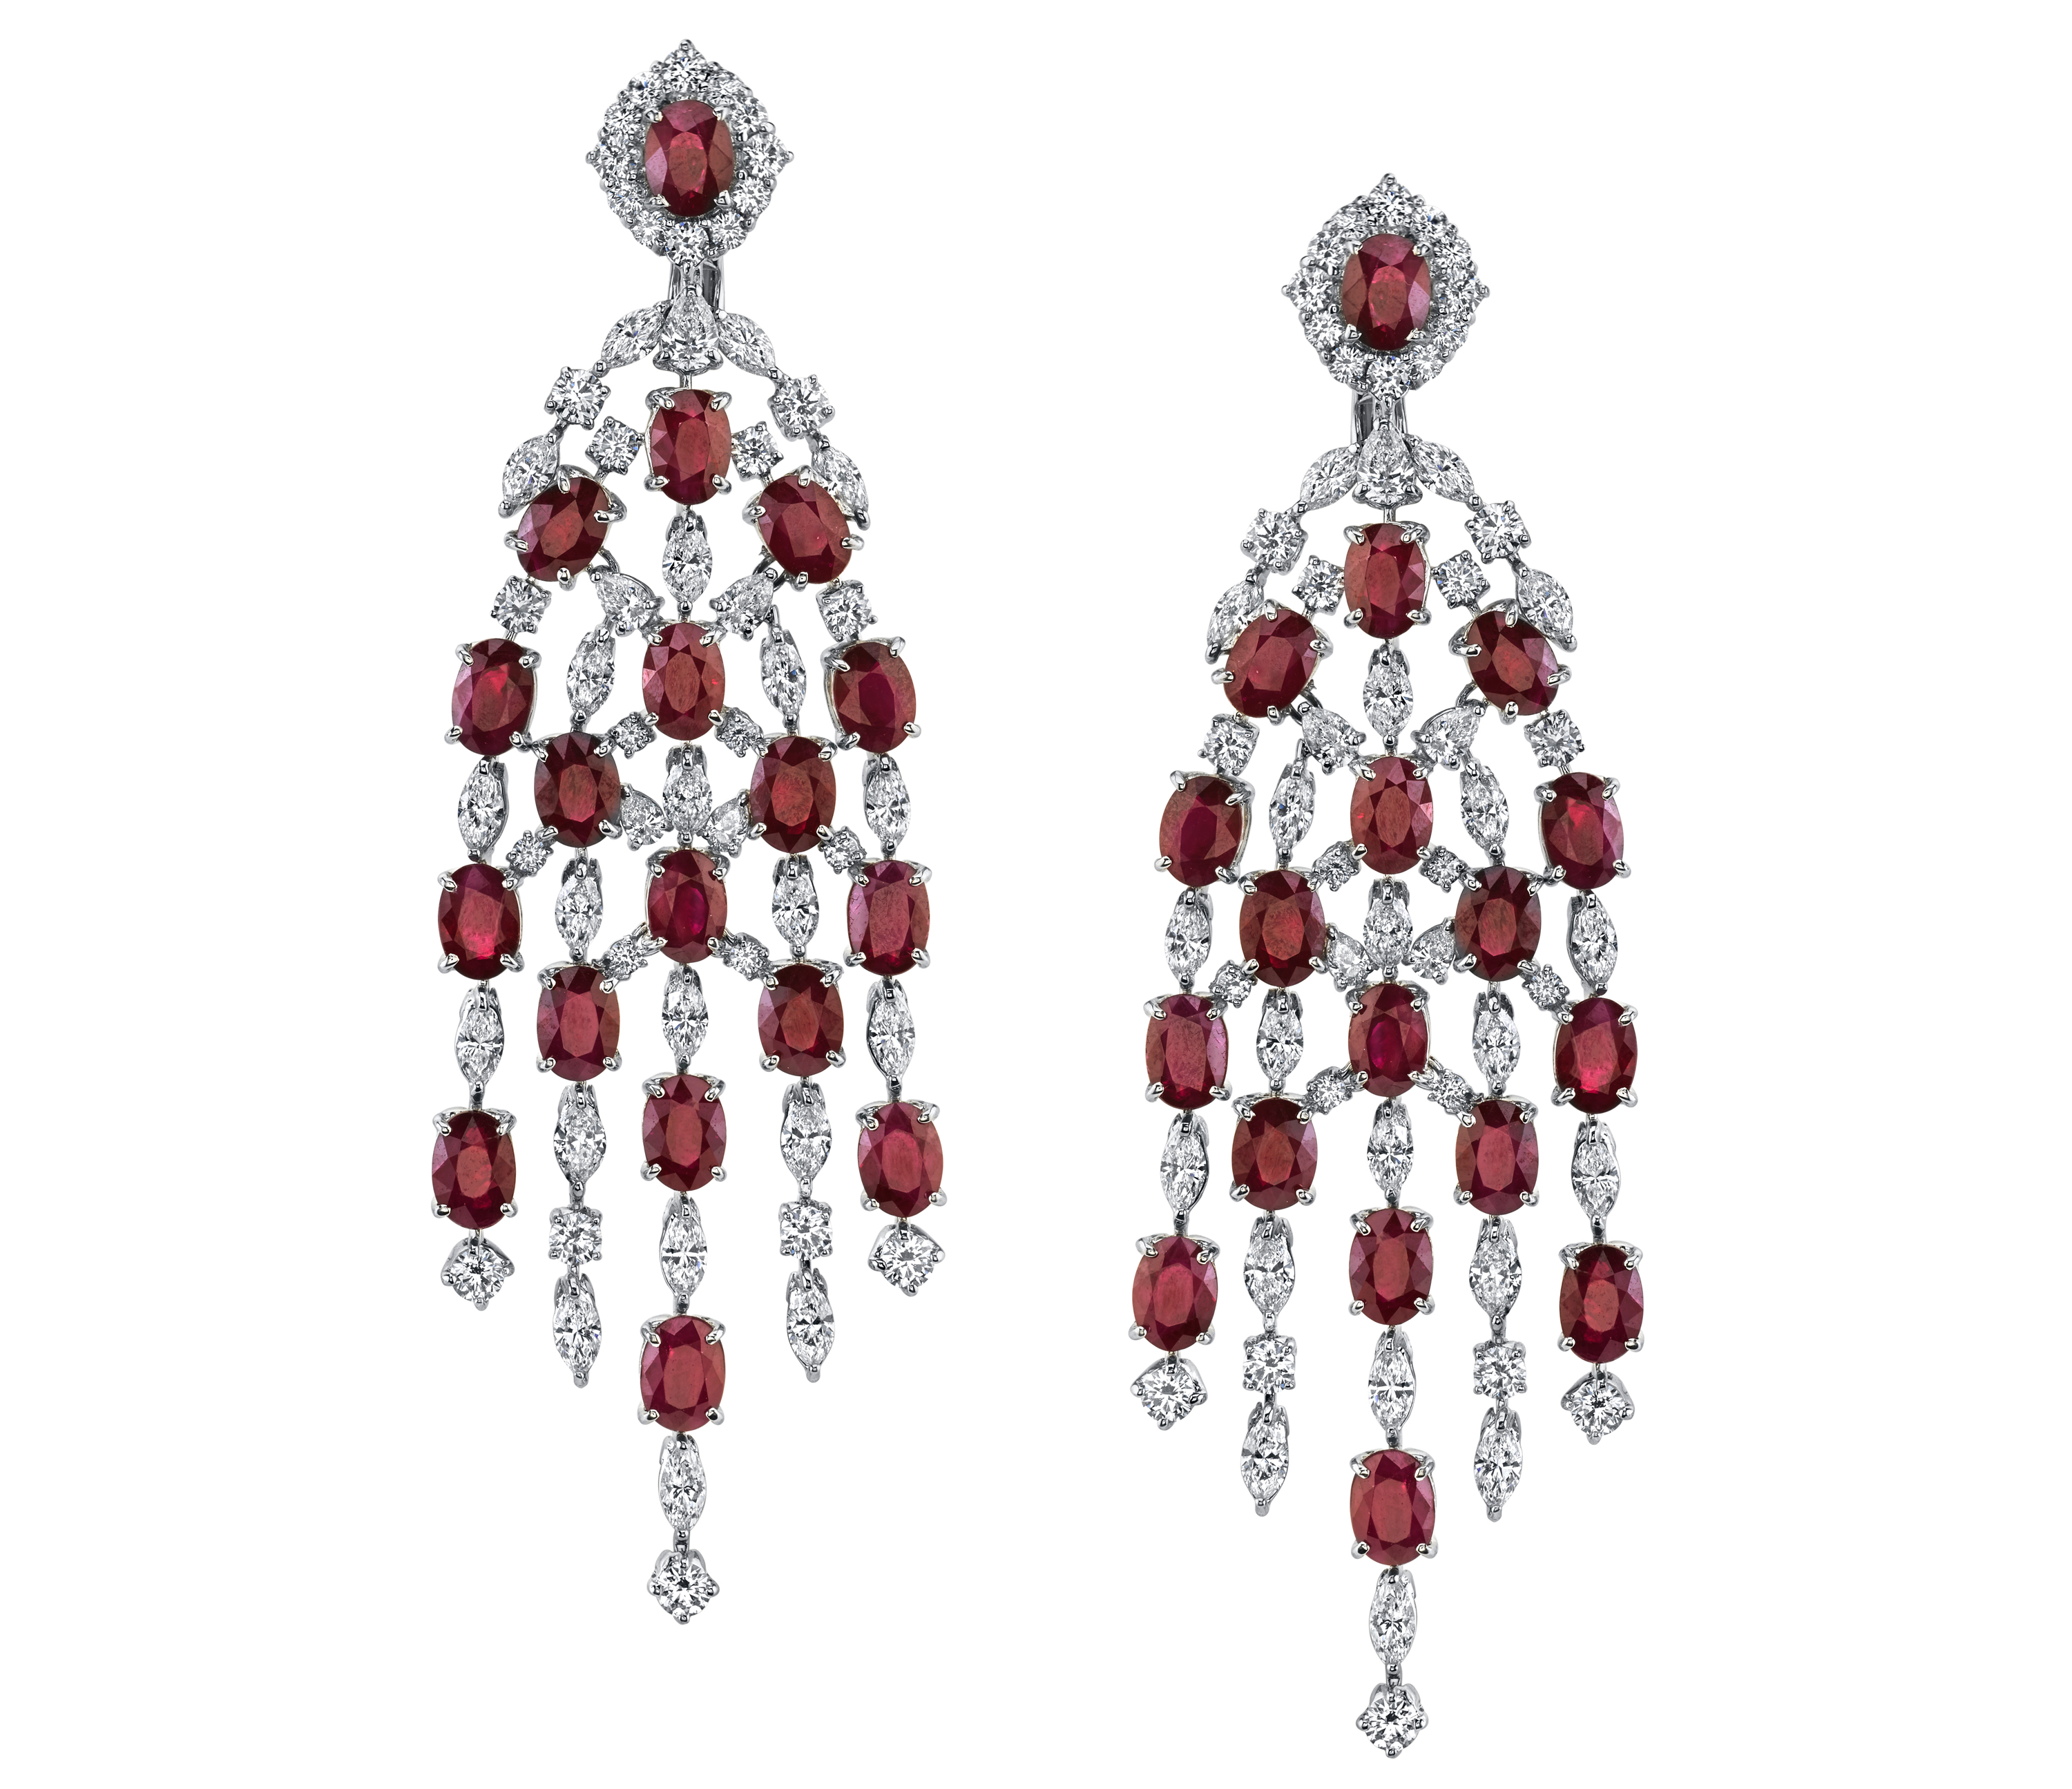 Red Diamond Chandelier Earrings: 12 Jewels For The Red Carpet Of Life